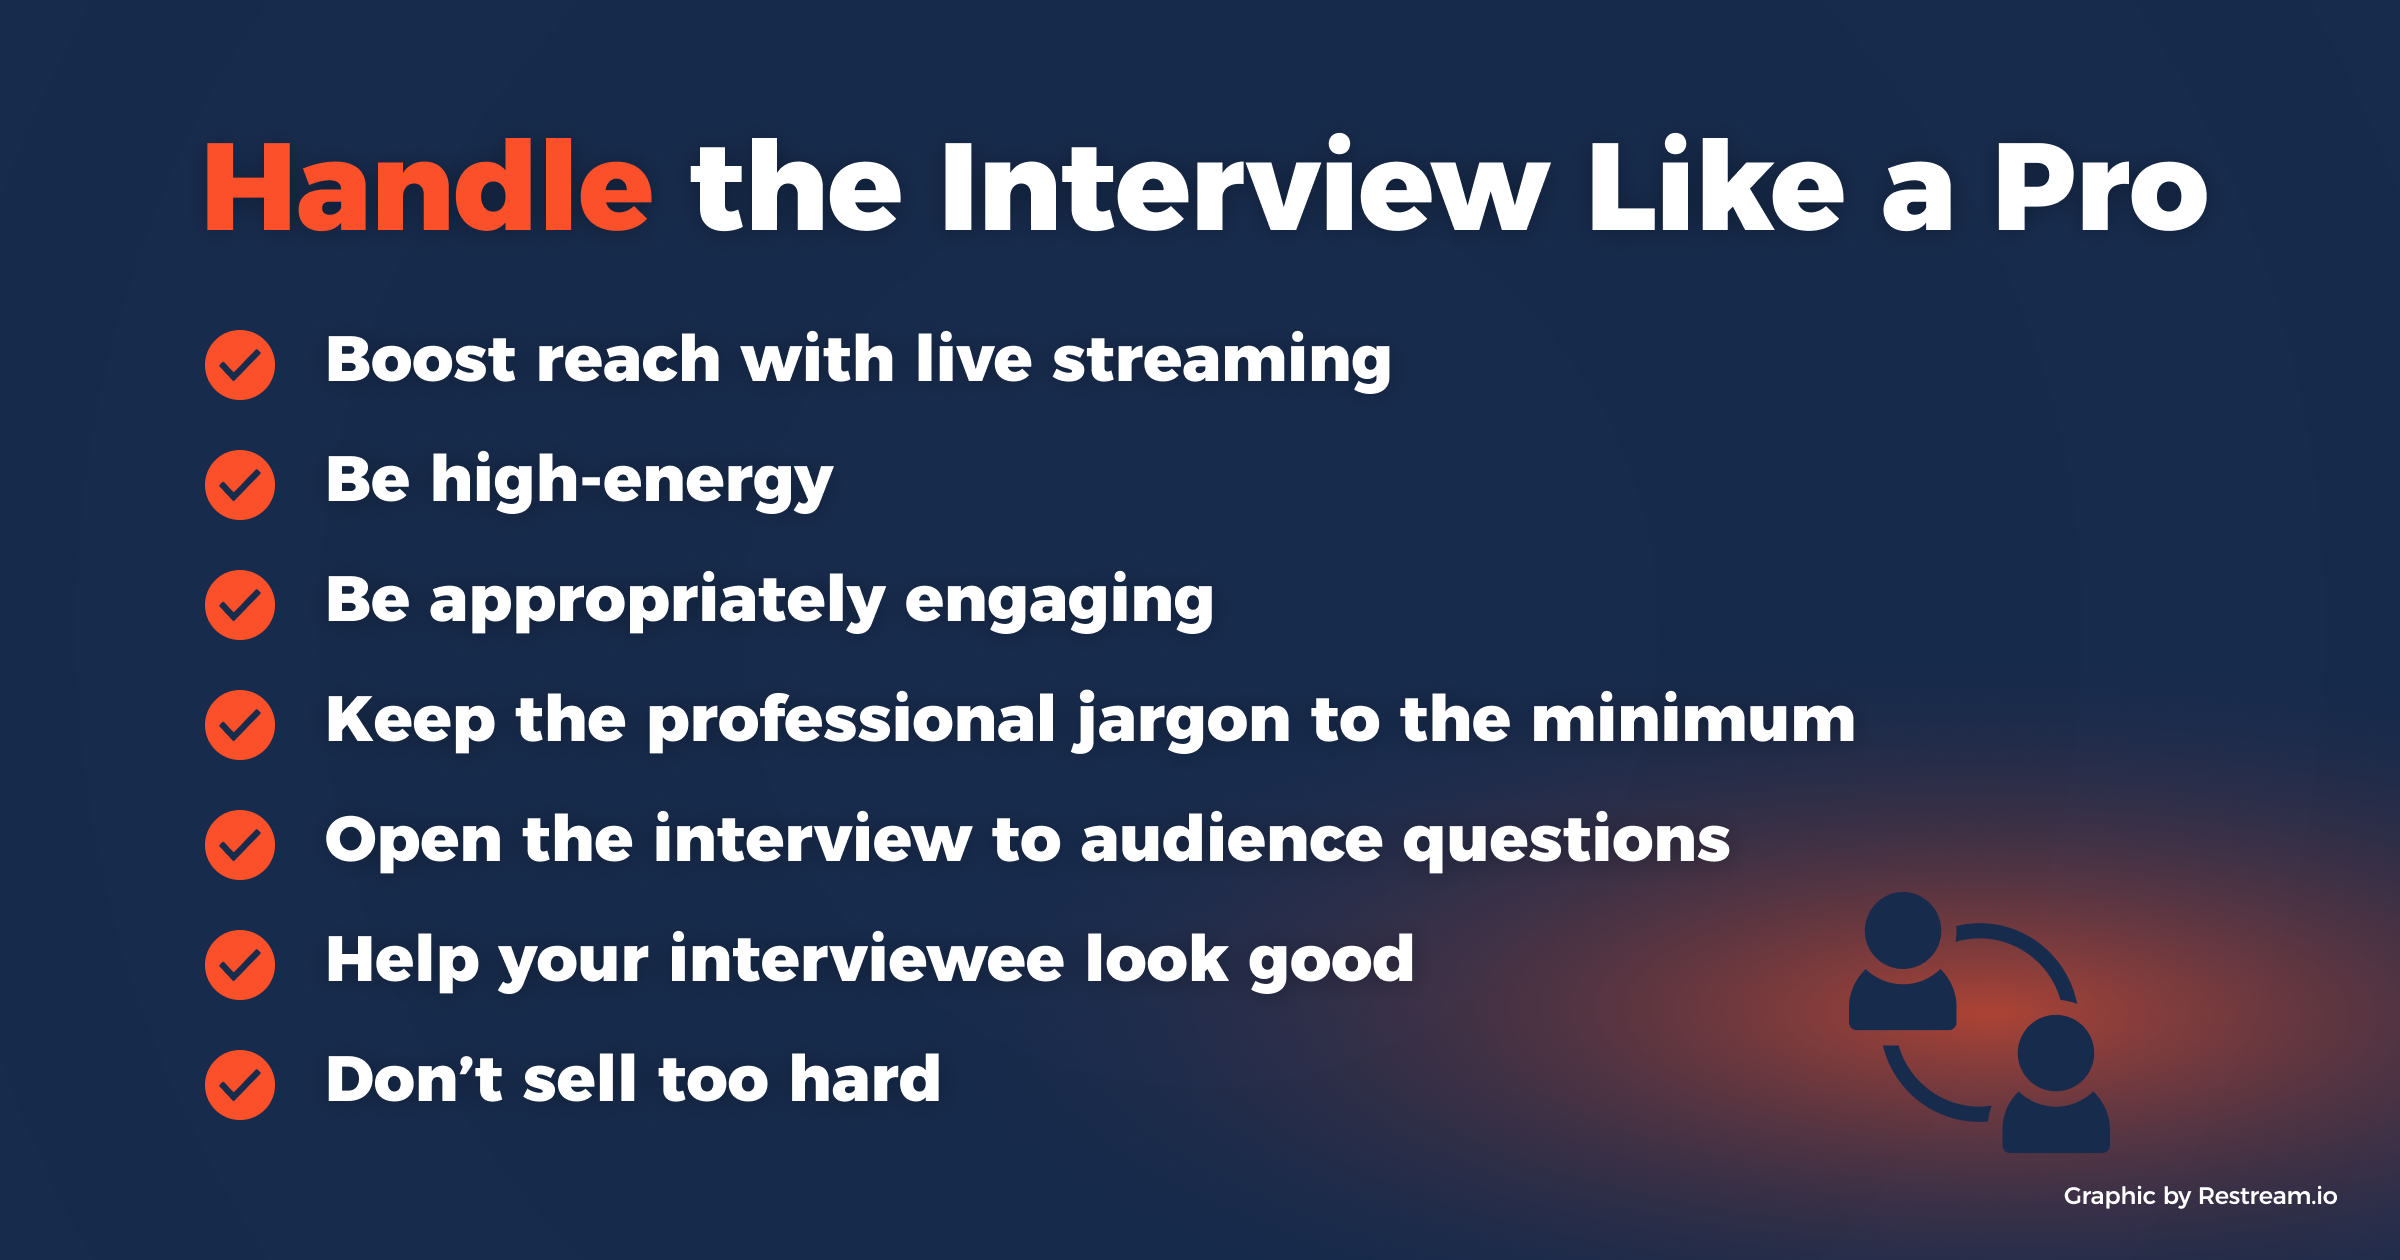 Handle the Interview Like a Pro checklist